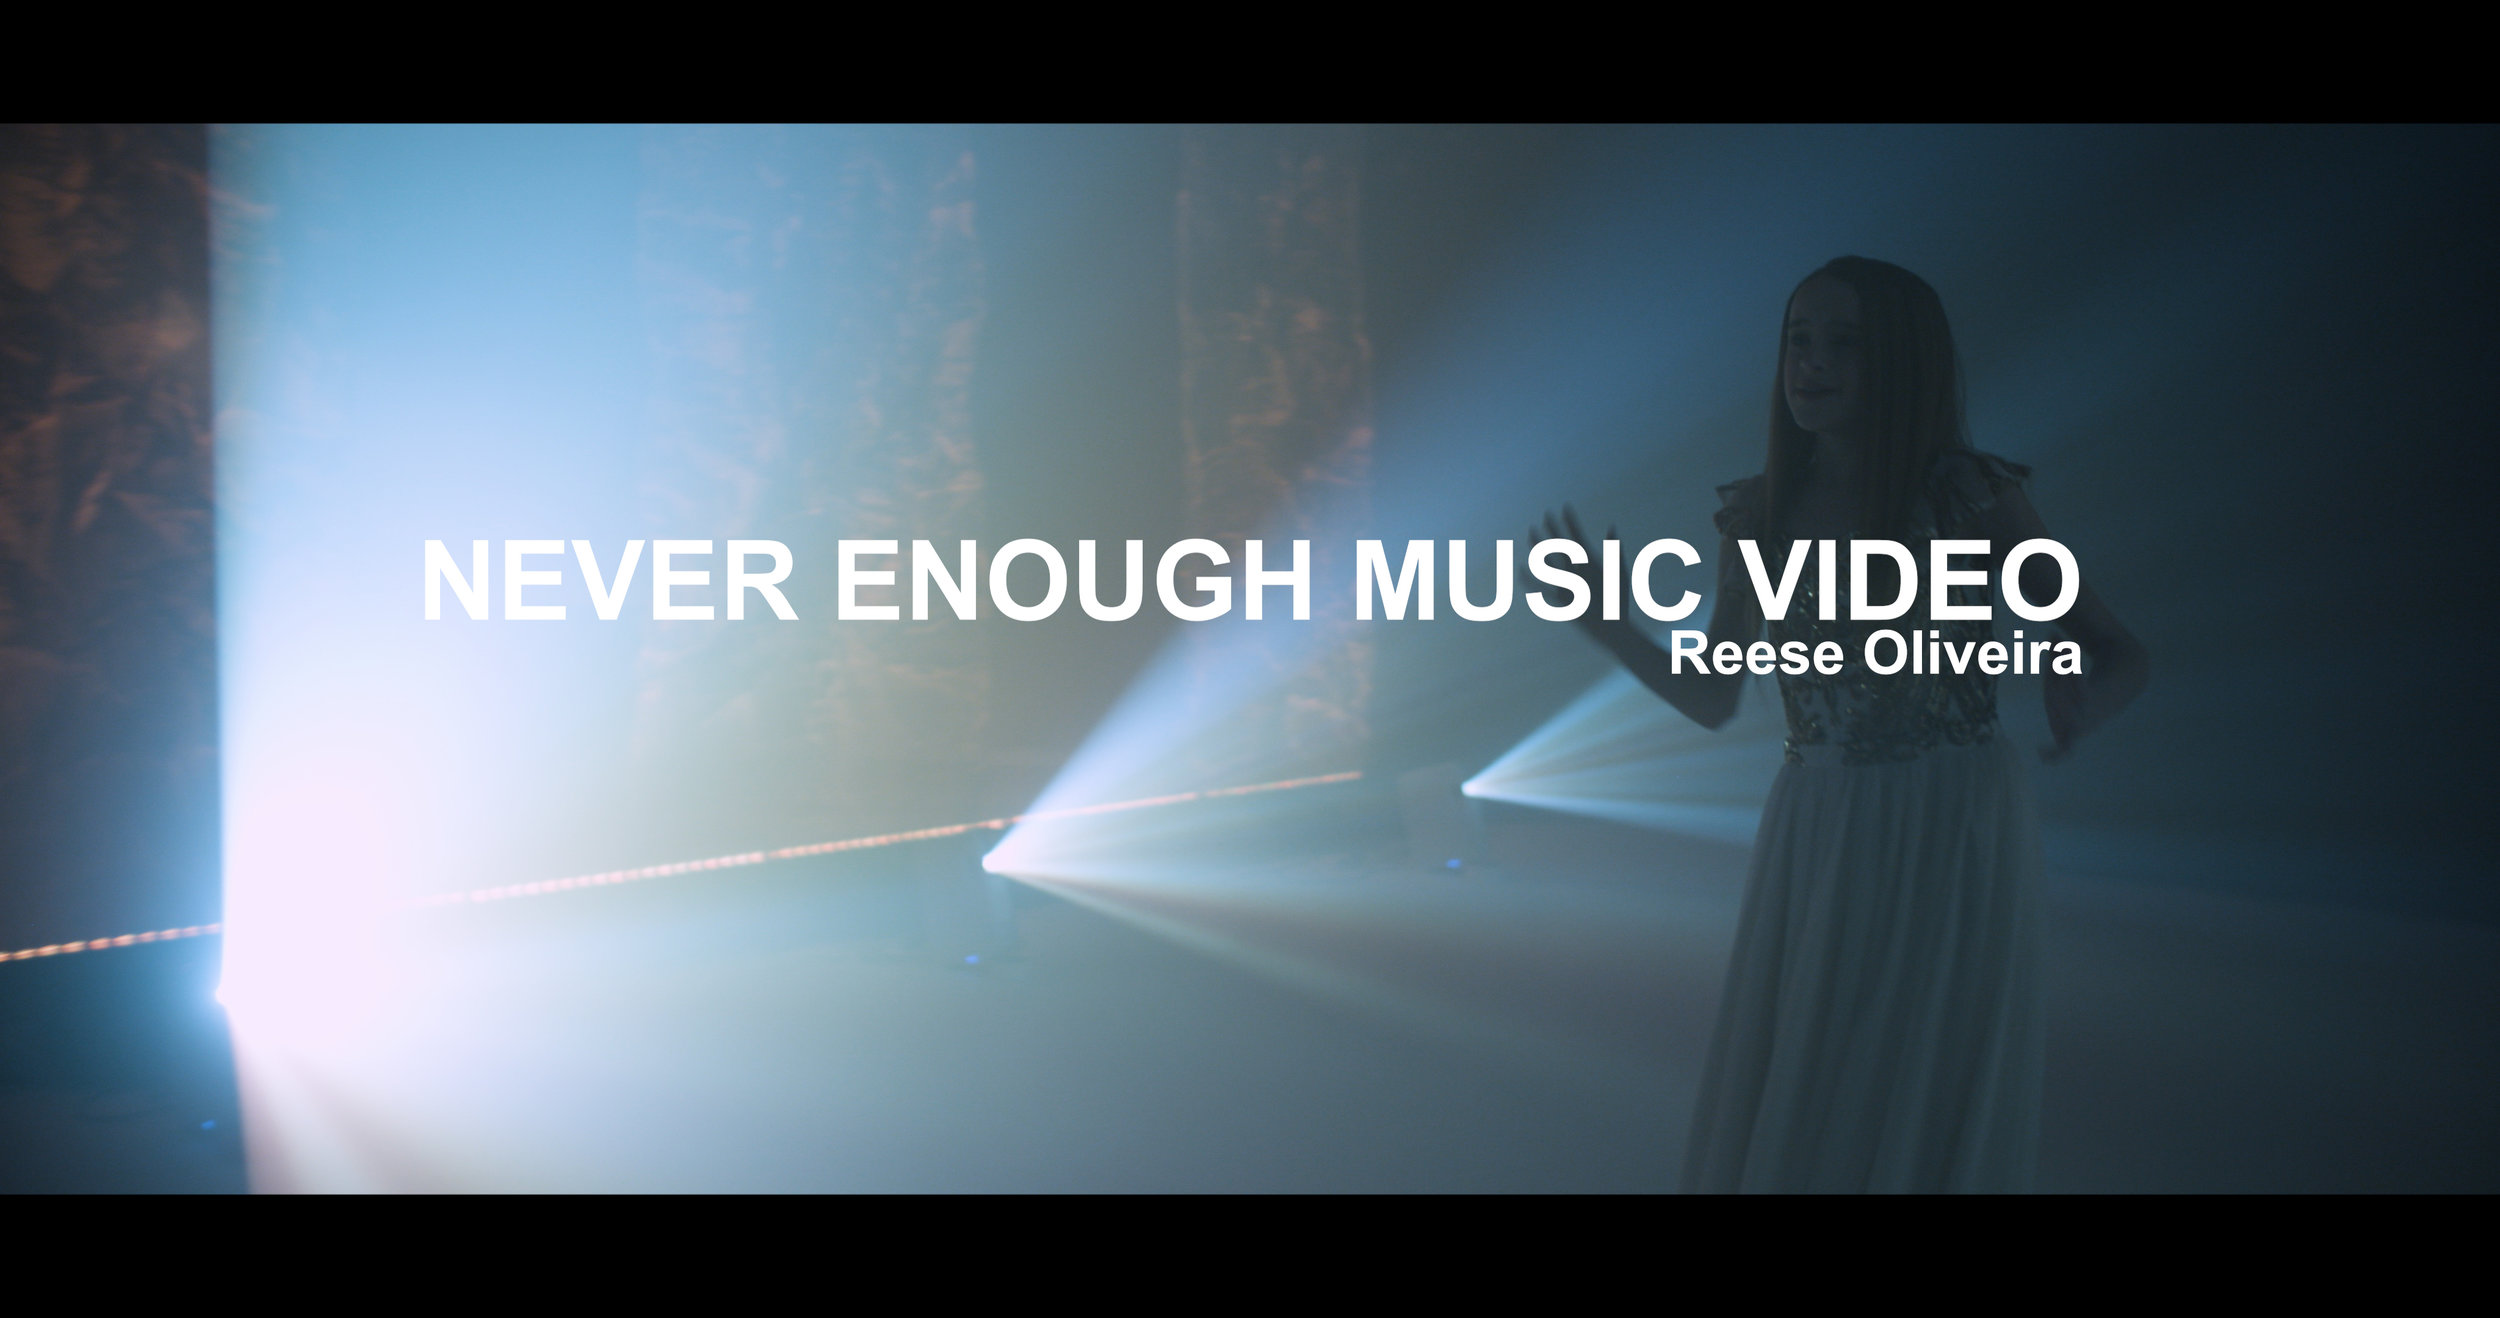 Never Enough Music Video